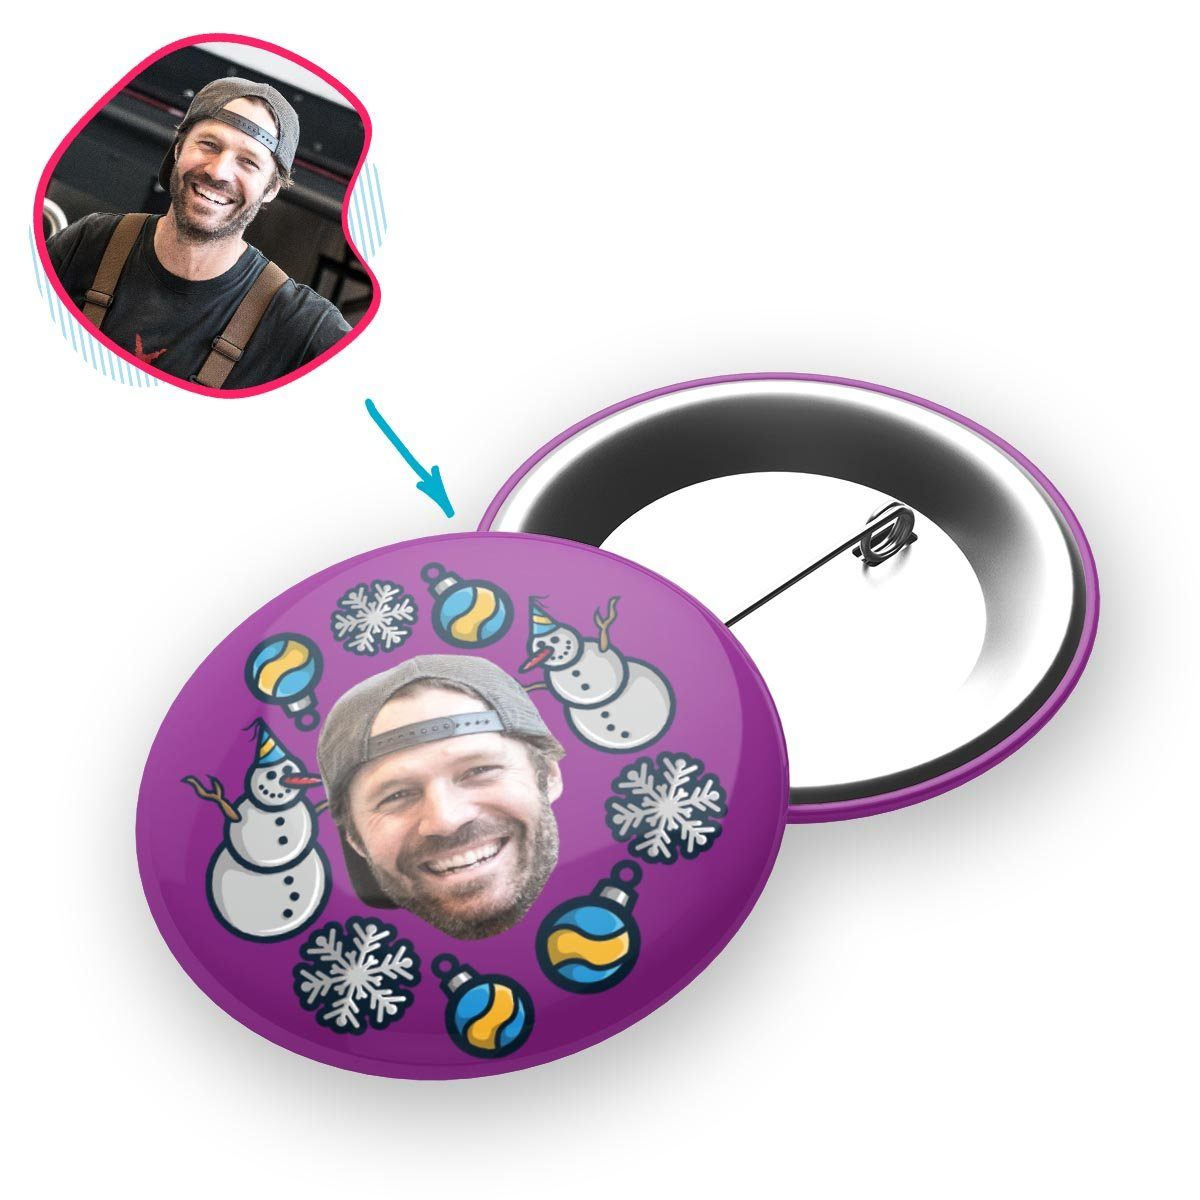 purple Snowman pin personalized with photo of face printed on it